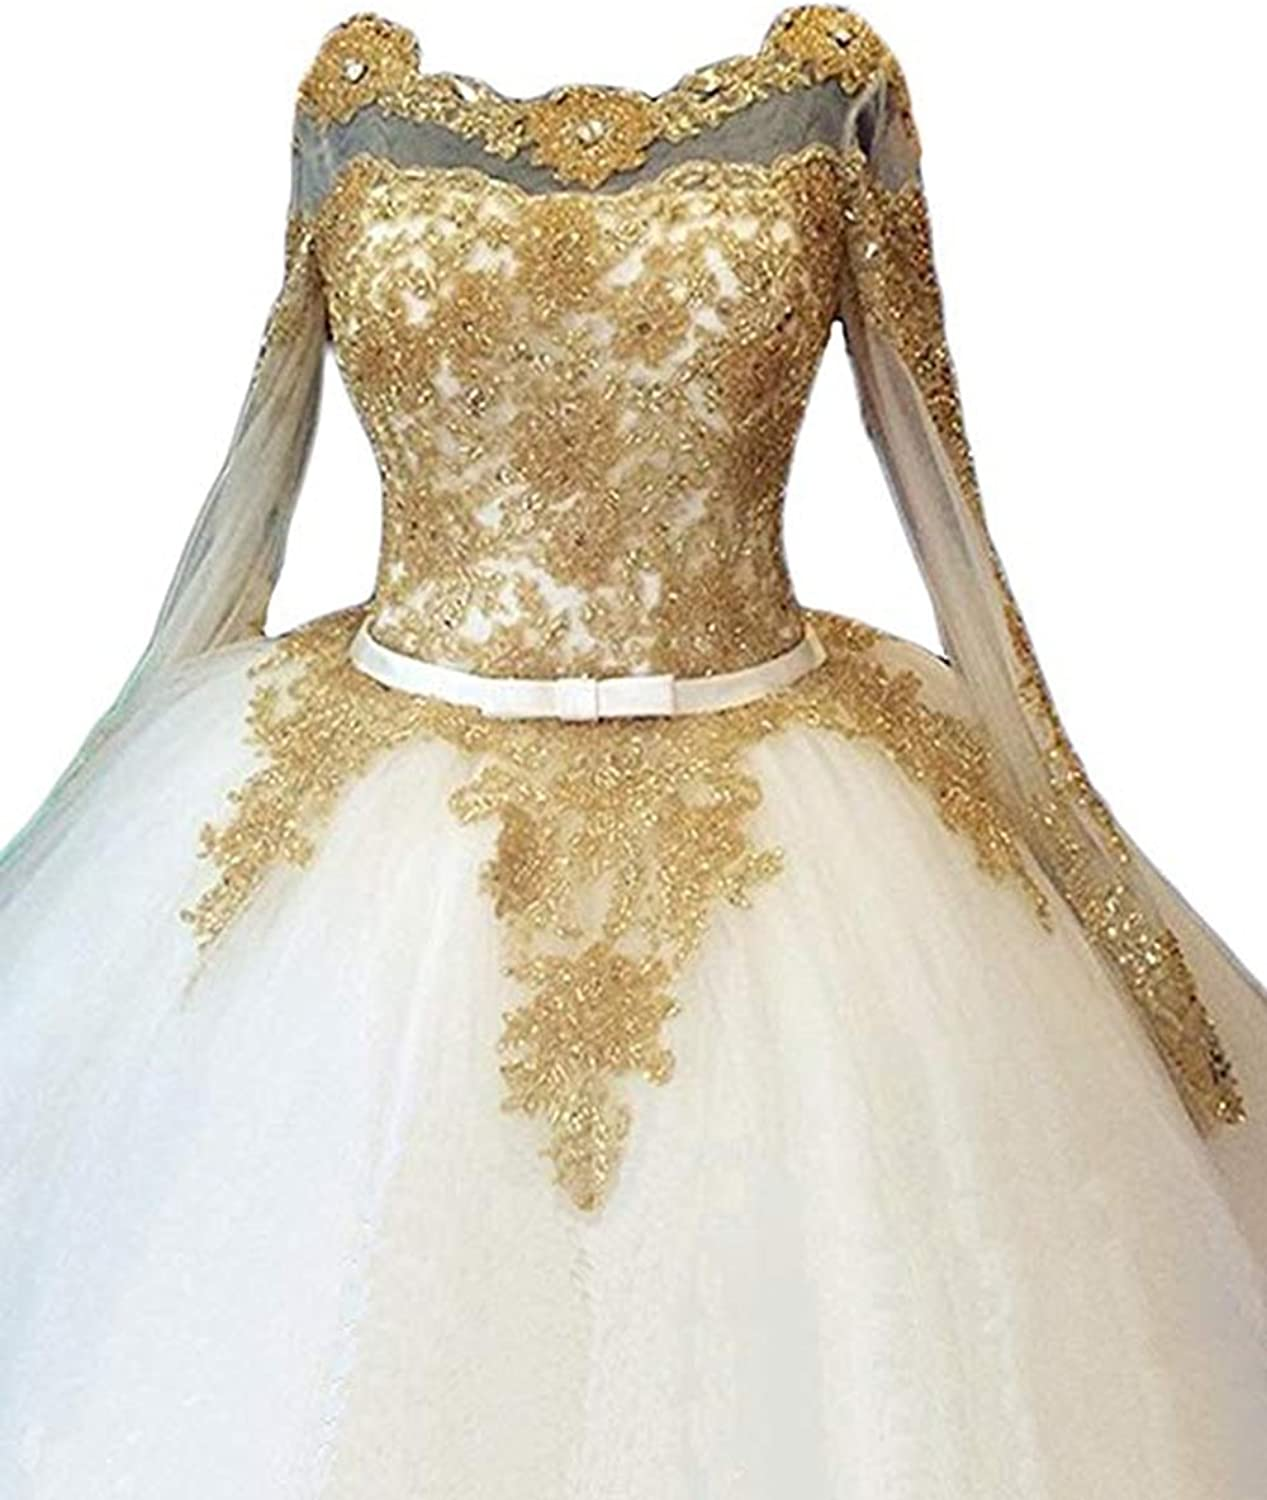 Alilith.Z Sexy Illusion Long Sleeve Bridal Gowns gold Appliques Beaded Wedding Dresses for Bride 2018 Ball Gown